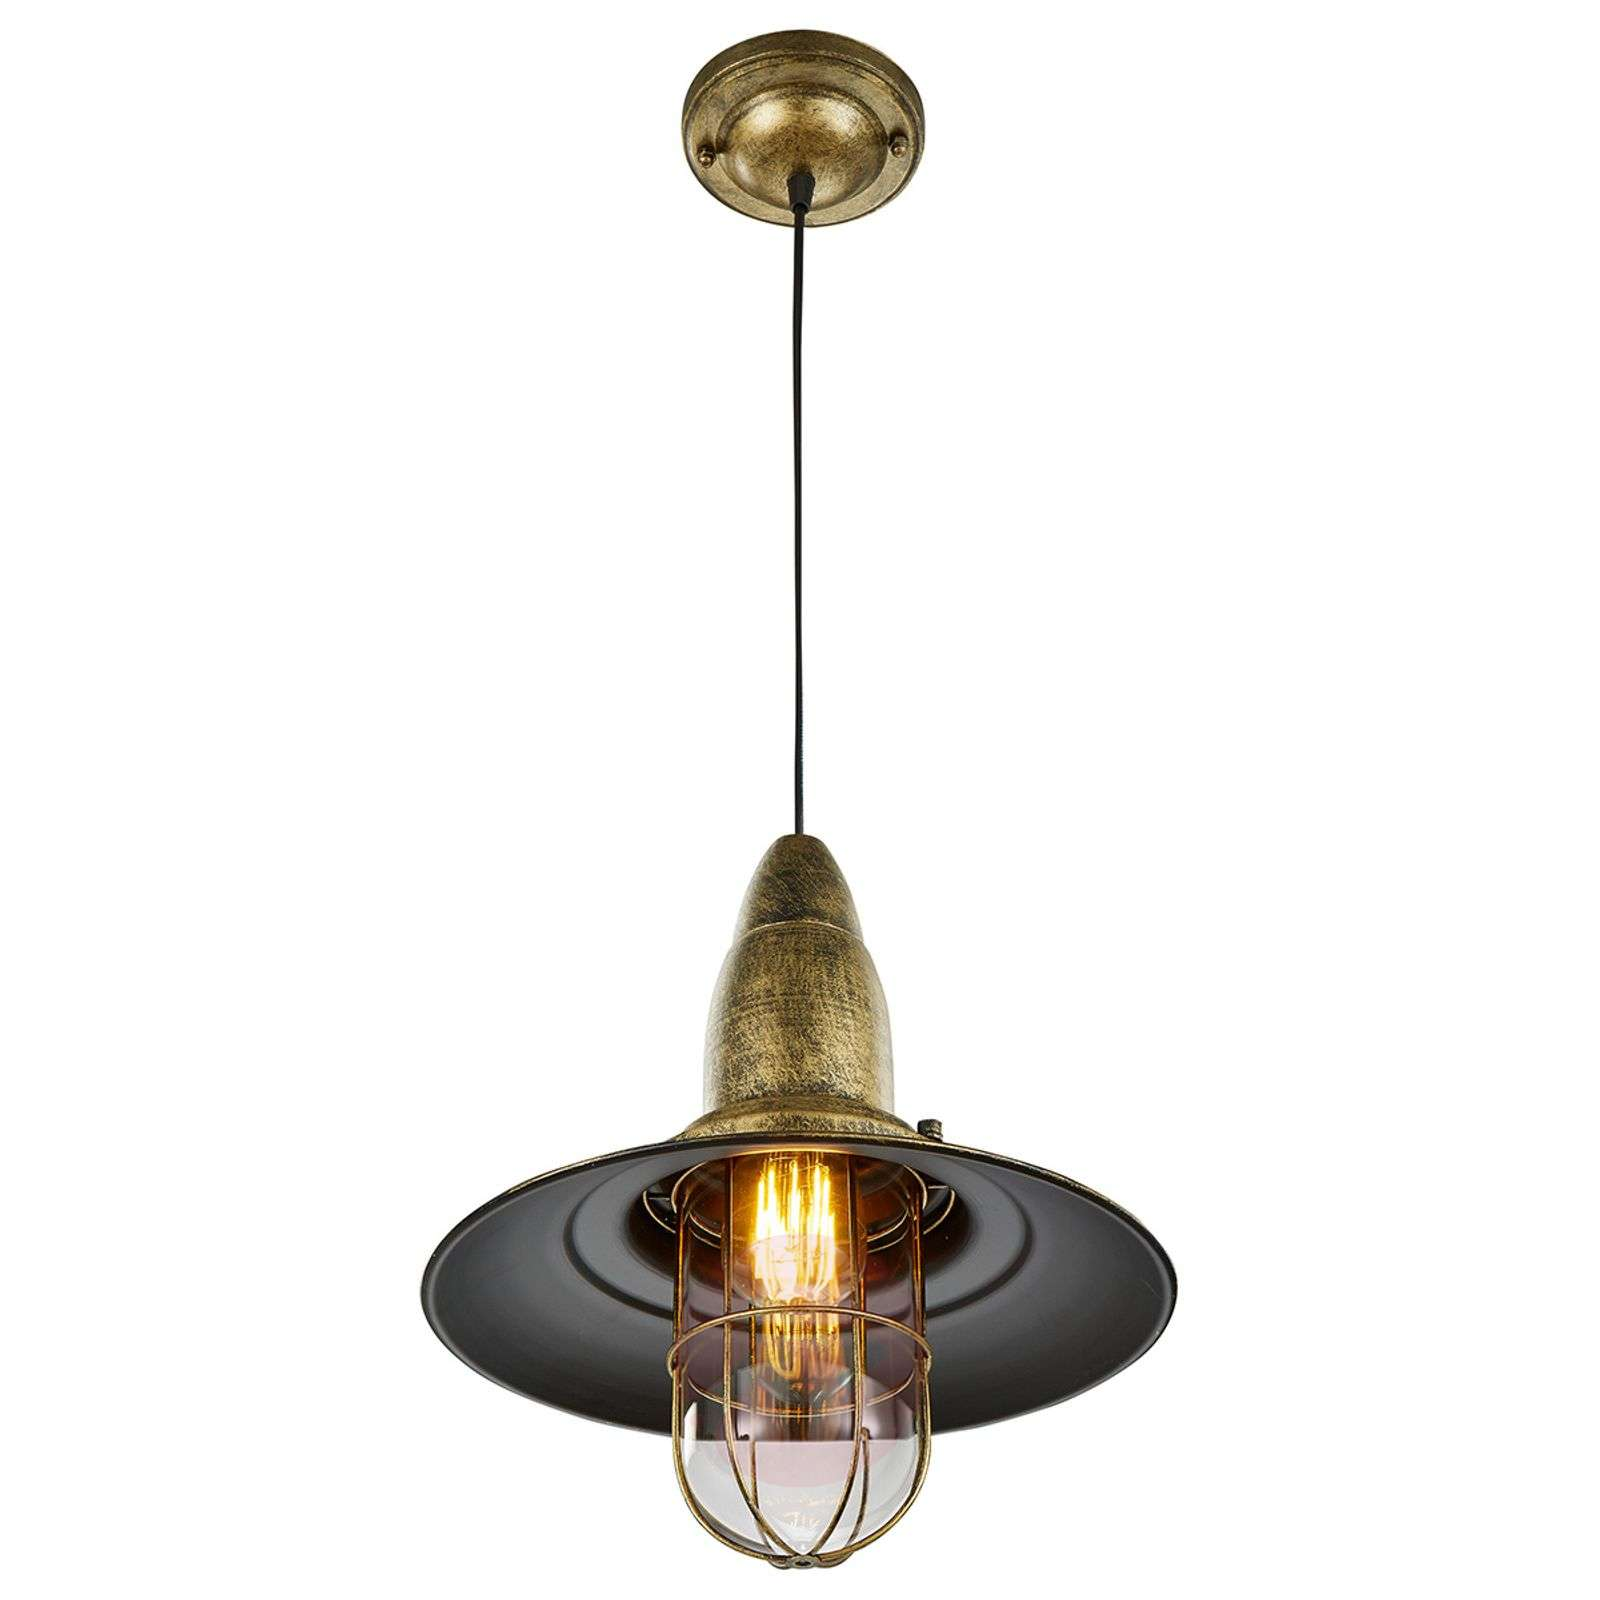 lighting from pendant nuevo hr brass jude coleman htm furniture